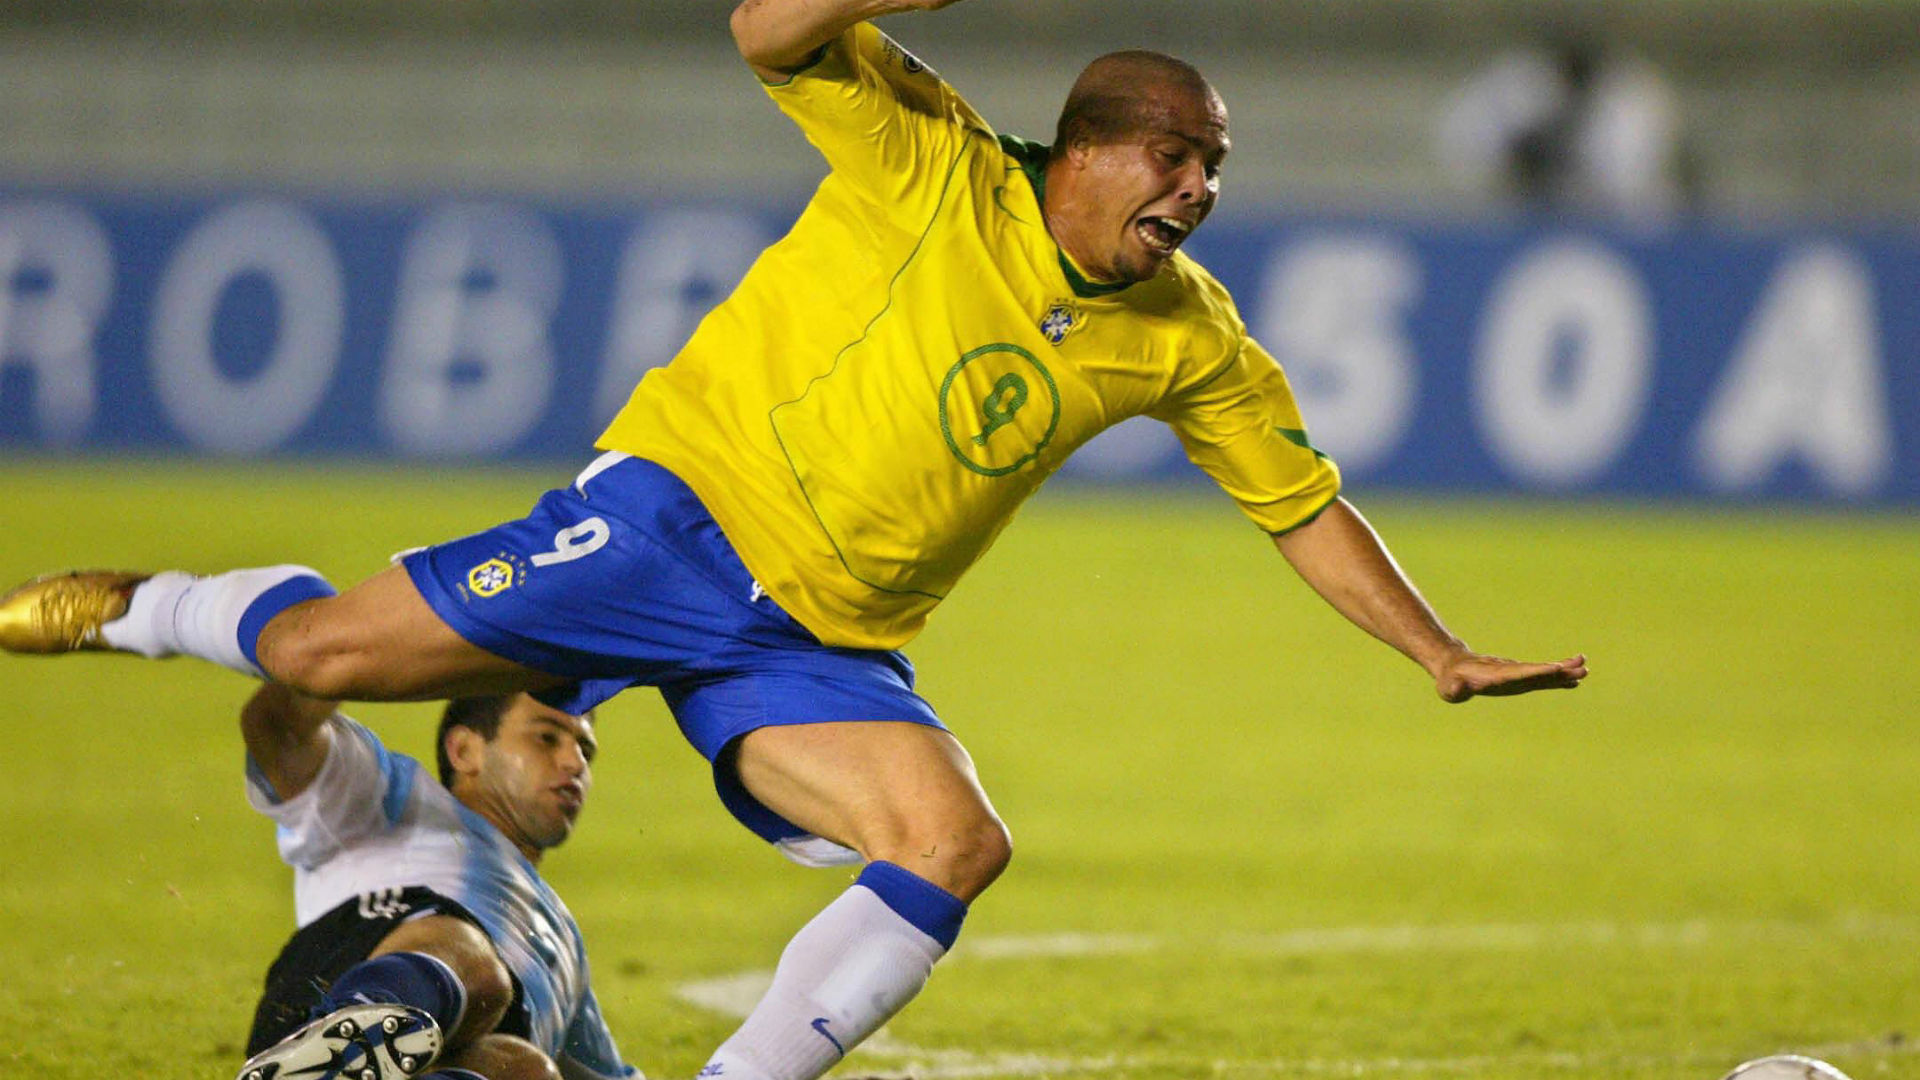 Cavallero Went One Way The Ball Other And Brazil Were 2 0 Up With Less Than 25 Minutes Remaining